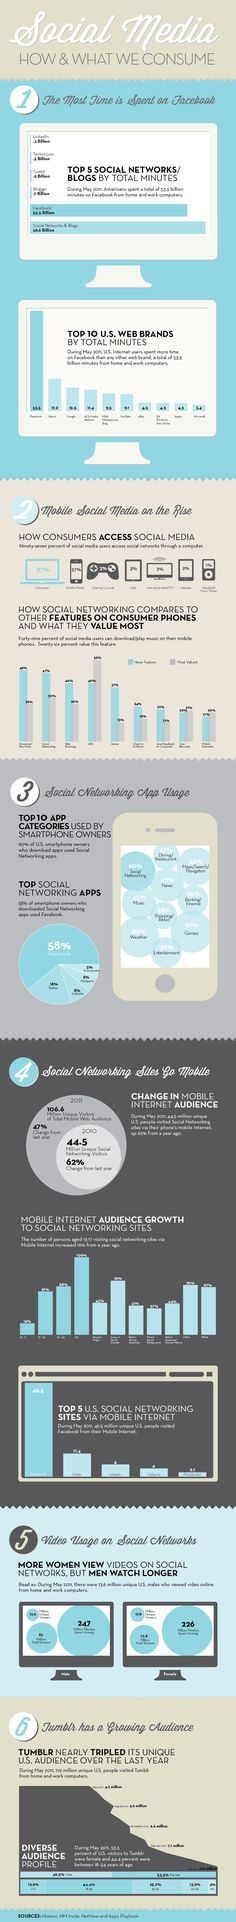 Great #Infographic: #SocialMedia: How & What We Consume